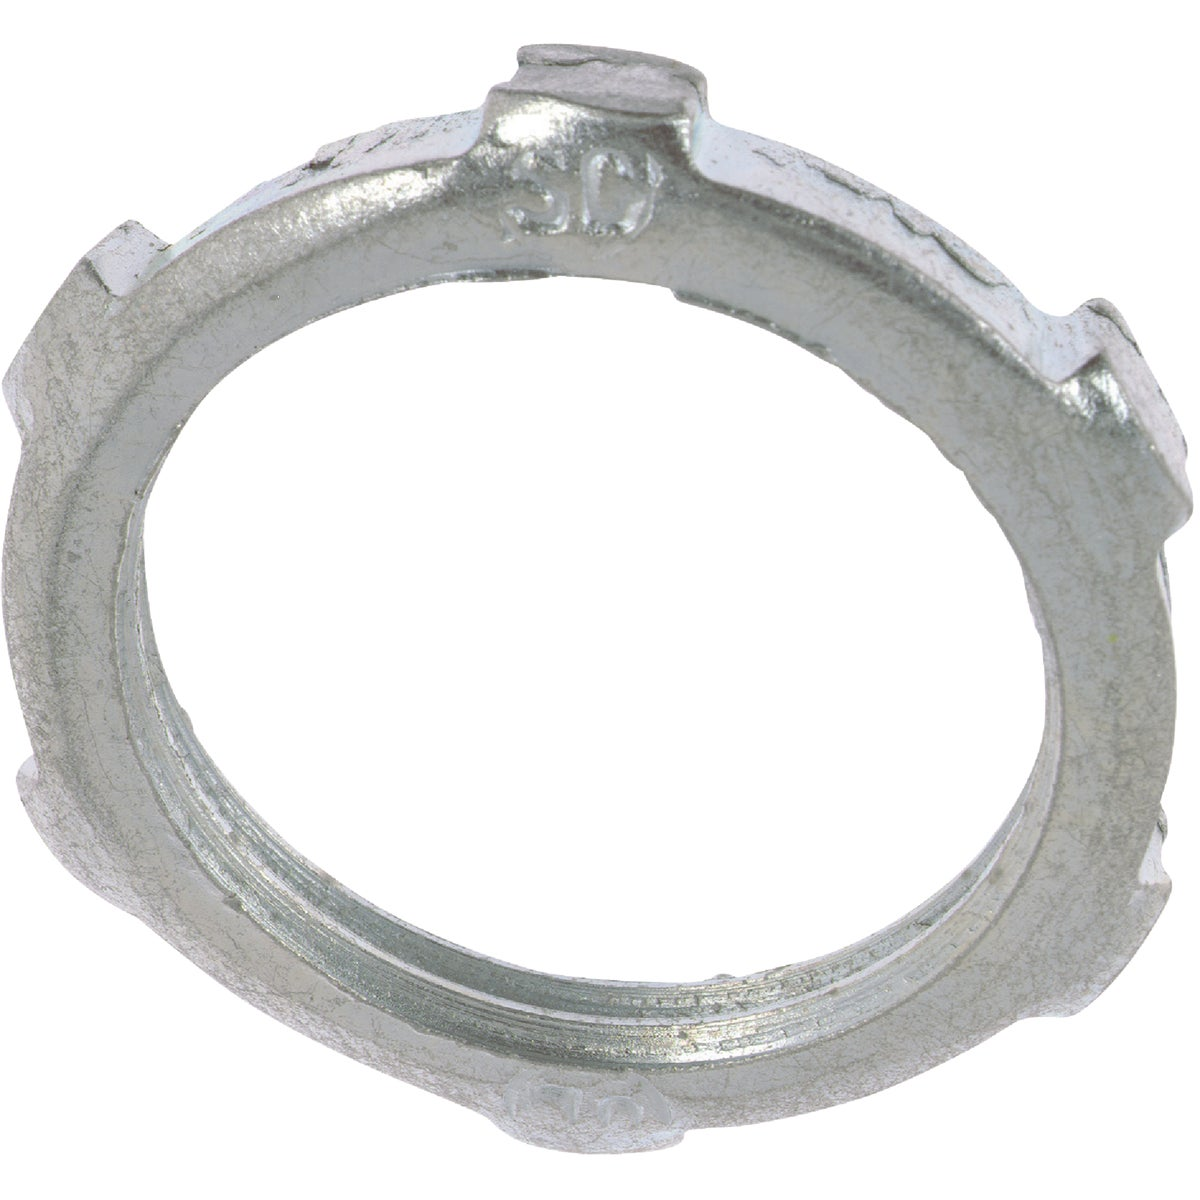 "2PK 3/4"" LOCKNUT - LN1022 by Thomas & Betts"